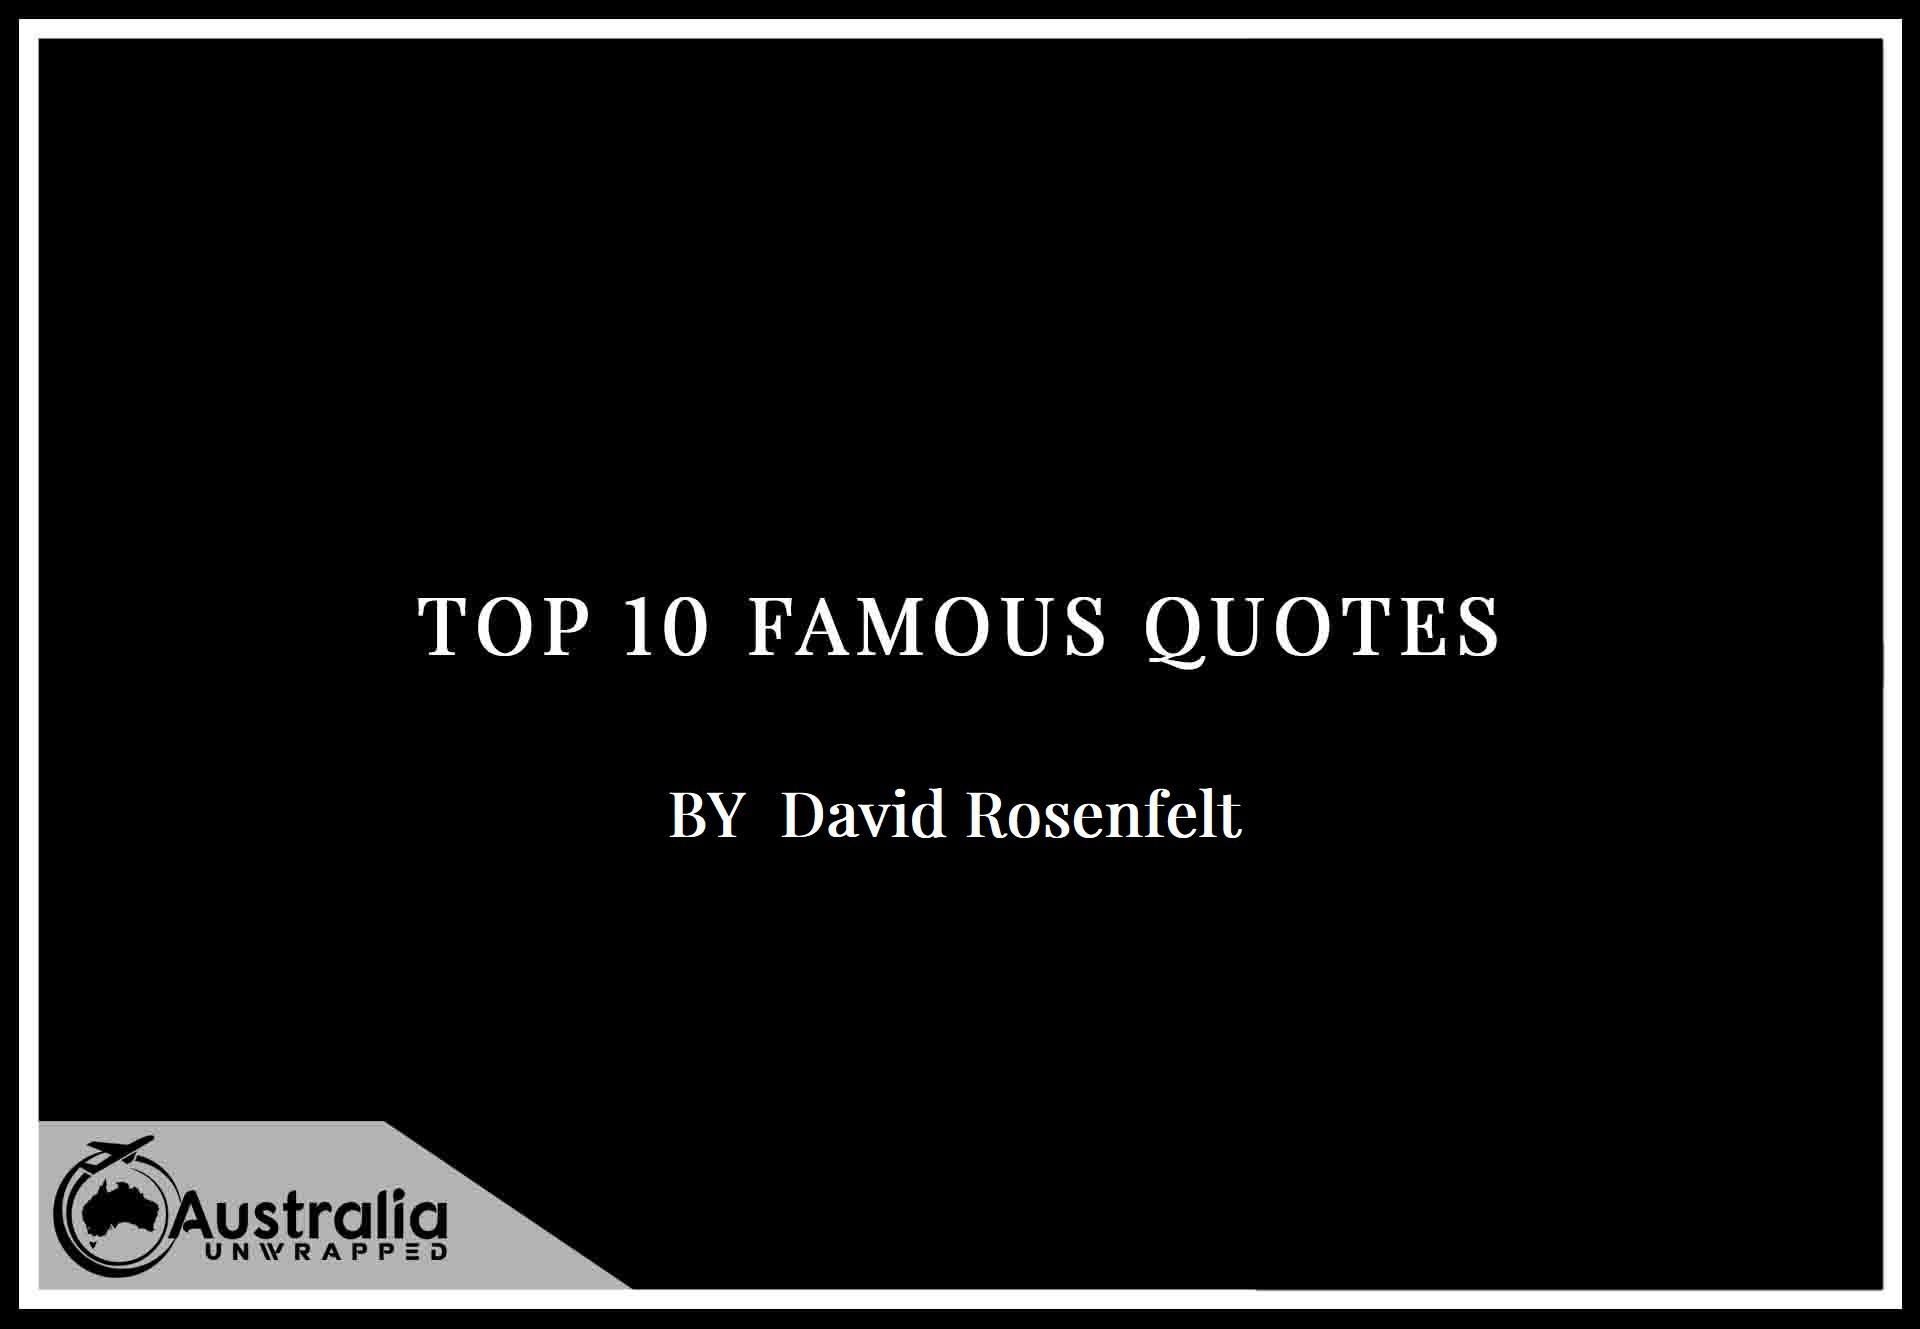 Top 10 Famous Quotes by Author David Rosenfelt